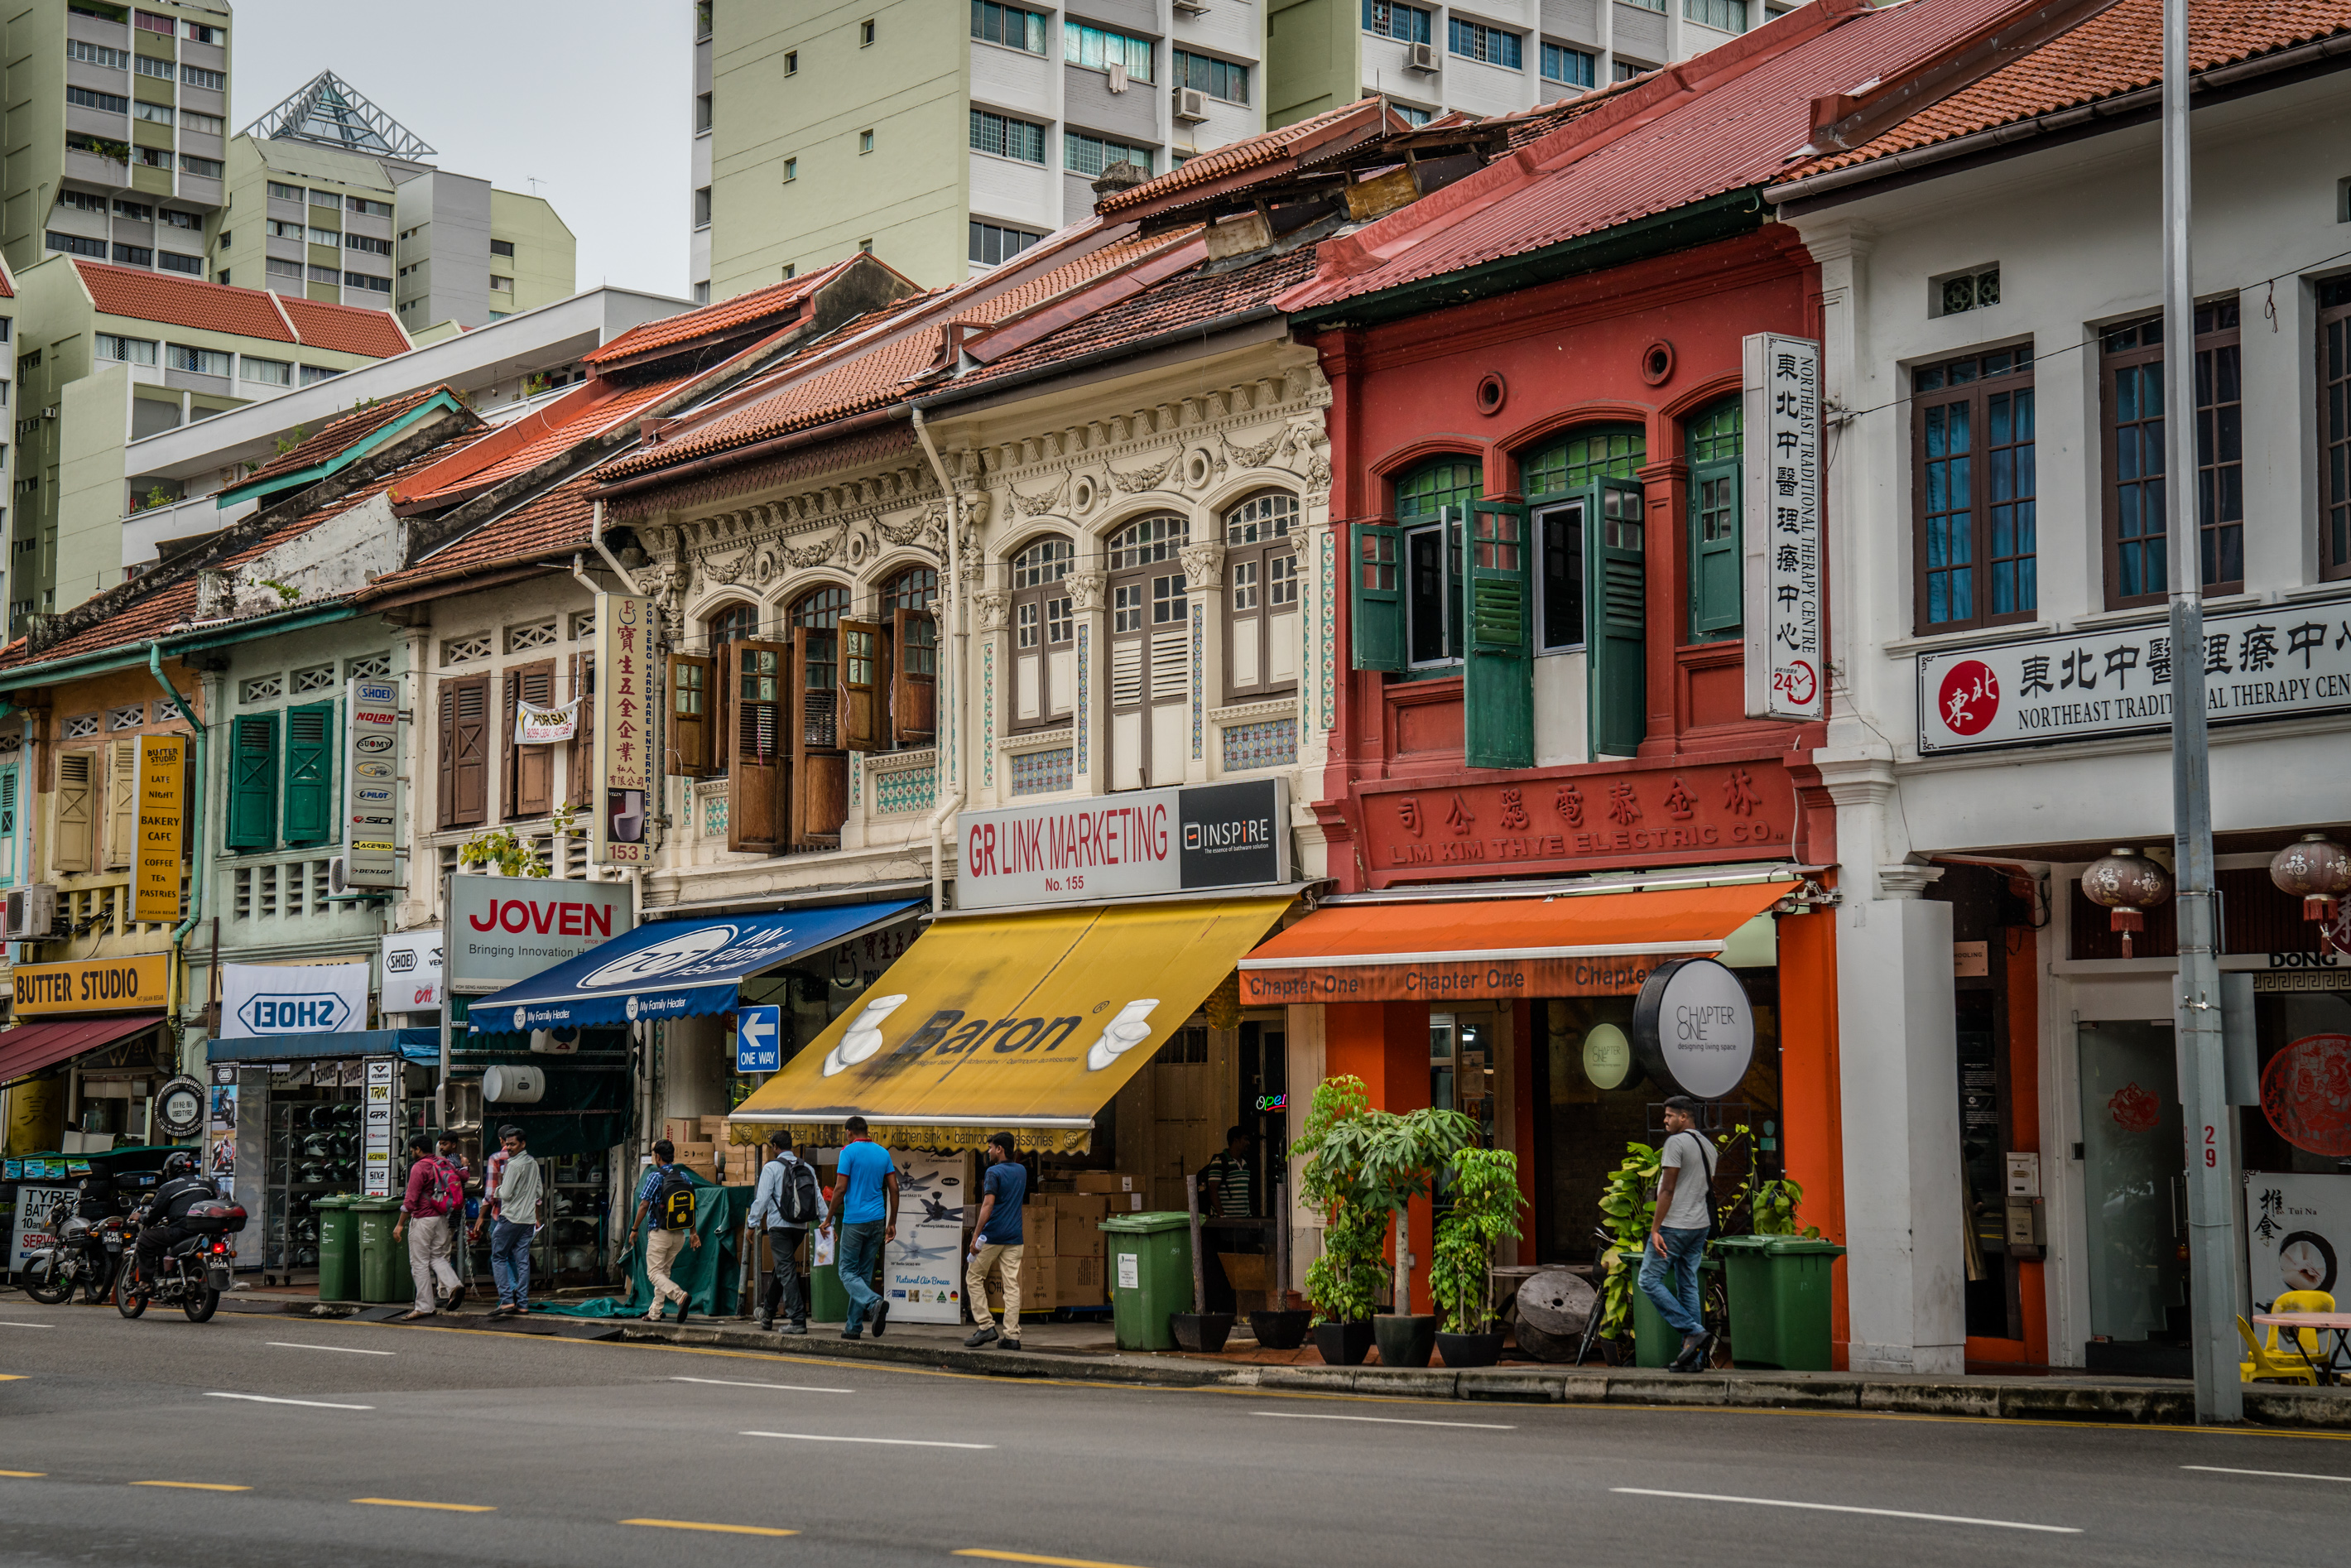 an overview of little india Traveller overview 40180 reviews  enjoyable walk down the colourful and  lively stteets of little india street art was a great way to  little india here is  same as the little india in singapore, and maybe here is of smaller scale shops  selling.